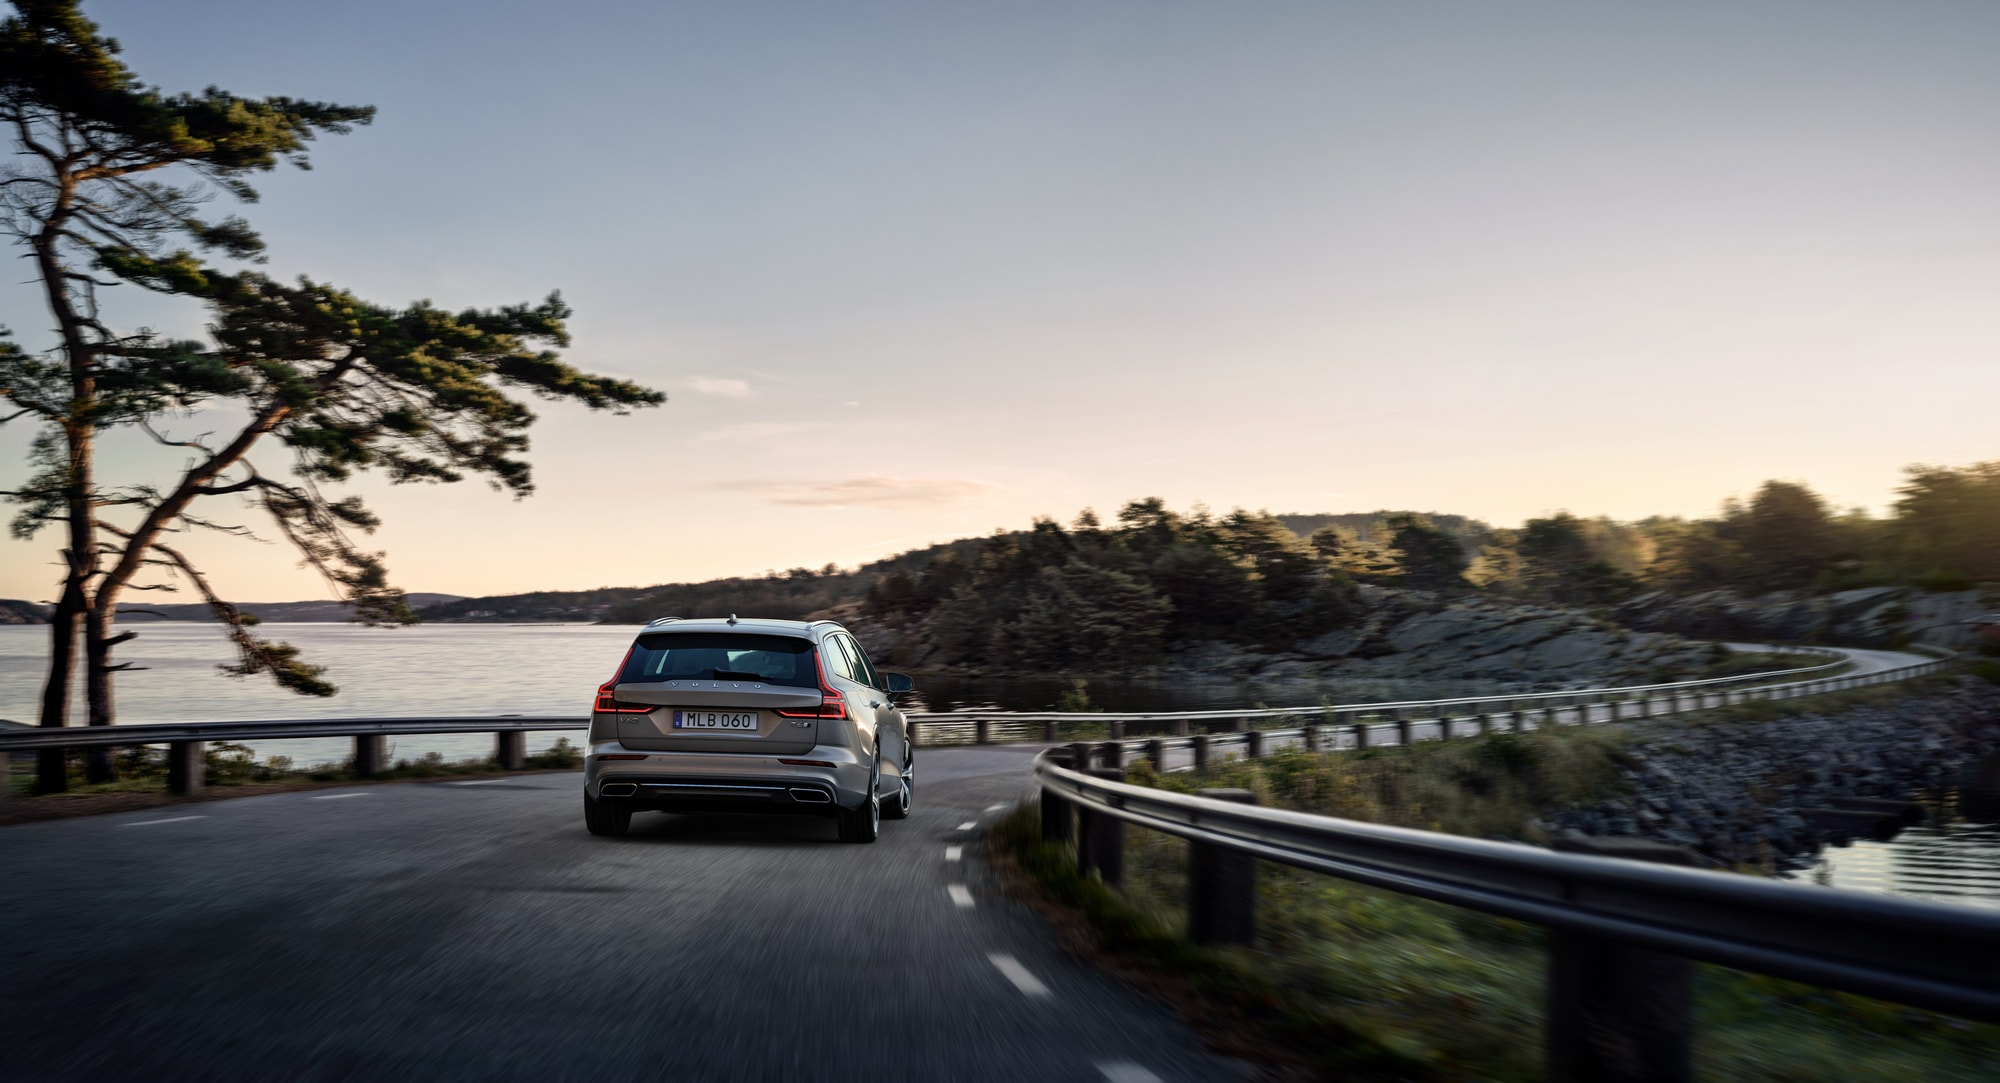 Where do I begin the process of trading in a vehicle at Volvo Cars New Bern | 2020 volvo v60 on the road